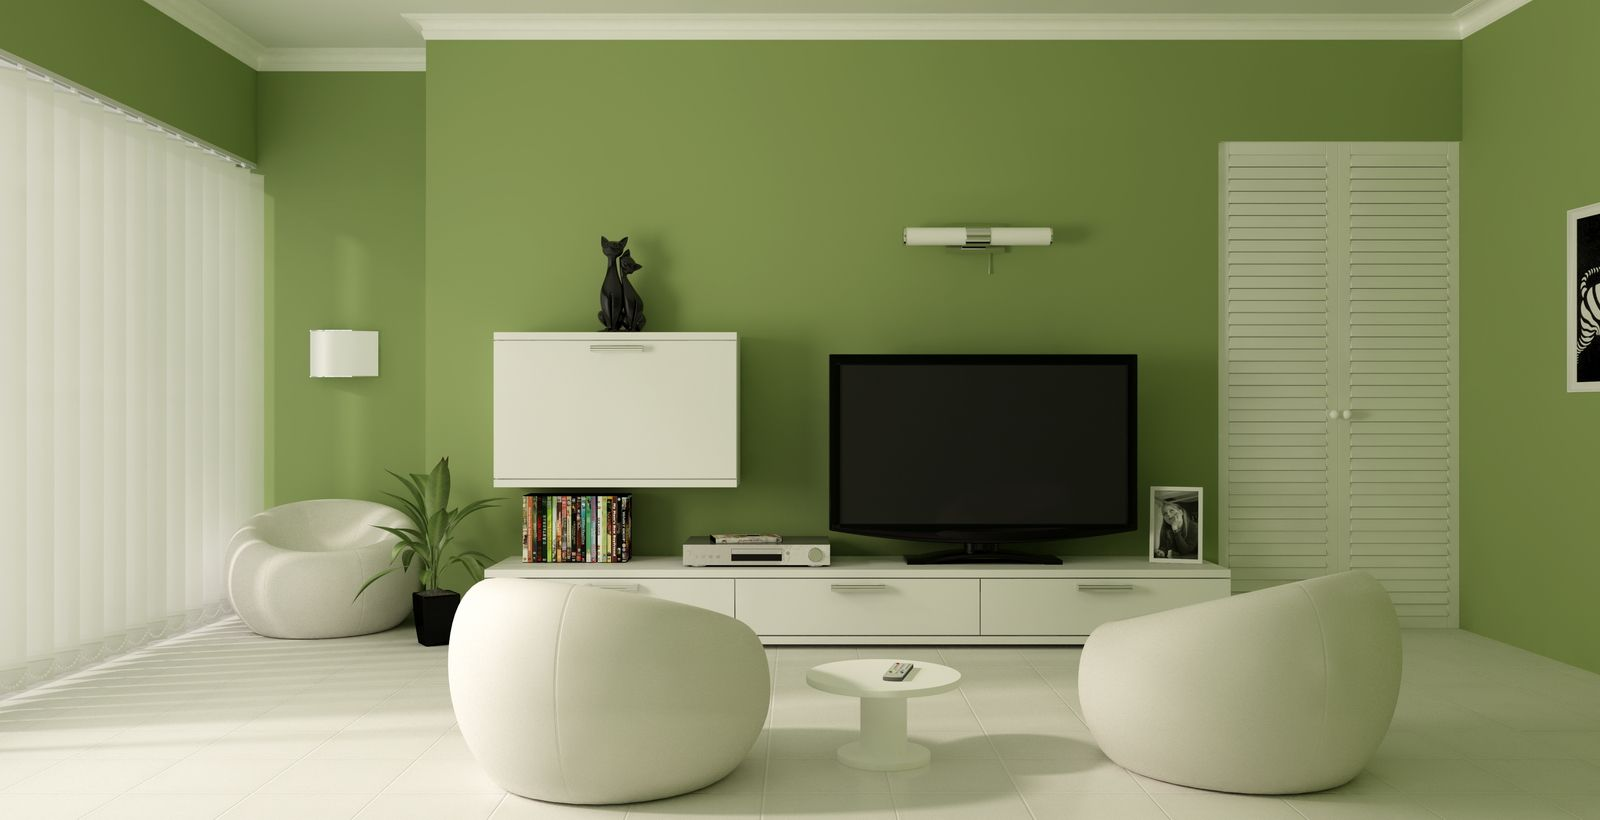 gorgeous paint colors mood to apply in every room luxurious paint colors mood using green wall painting combined with white tv cabinet and white single - Interior Design Wall Paint Colors